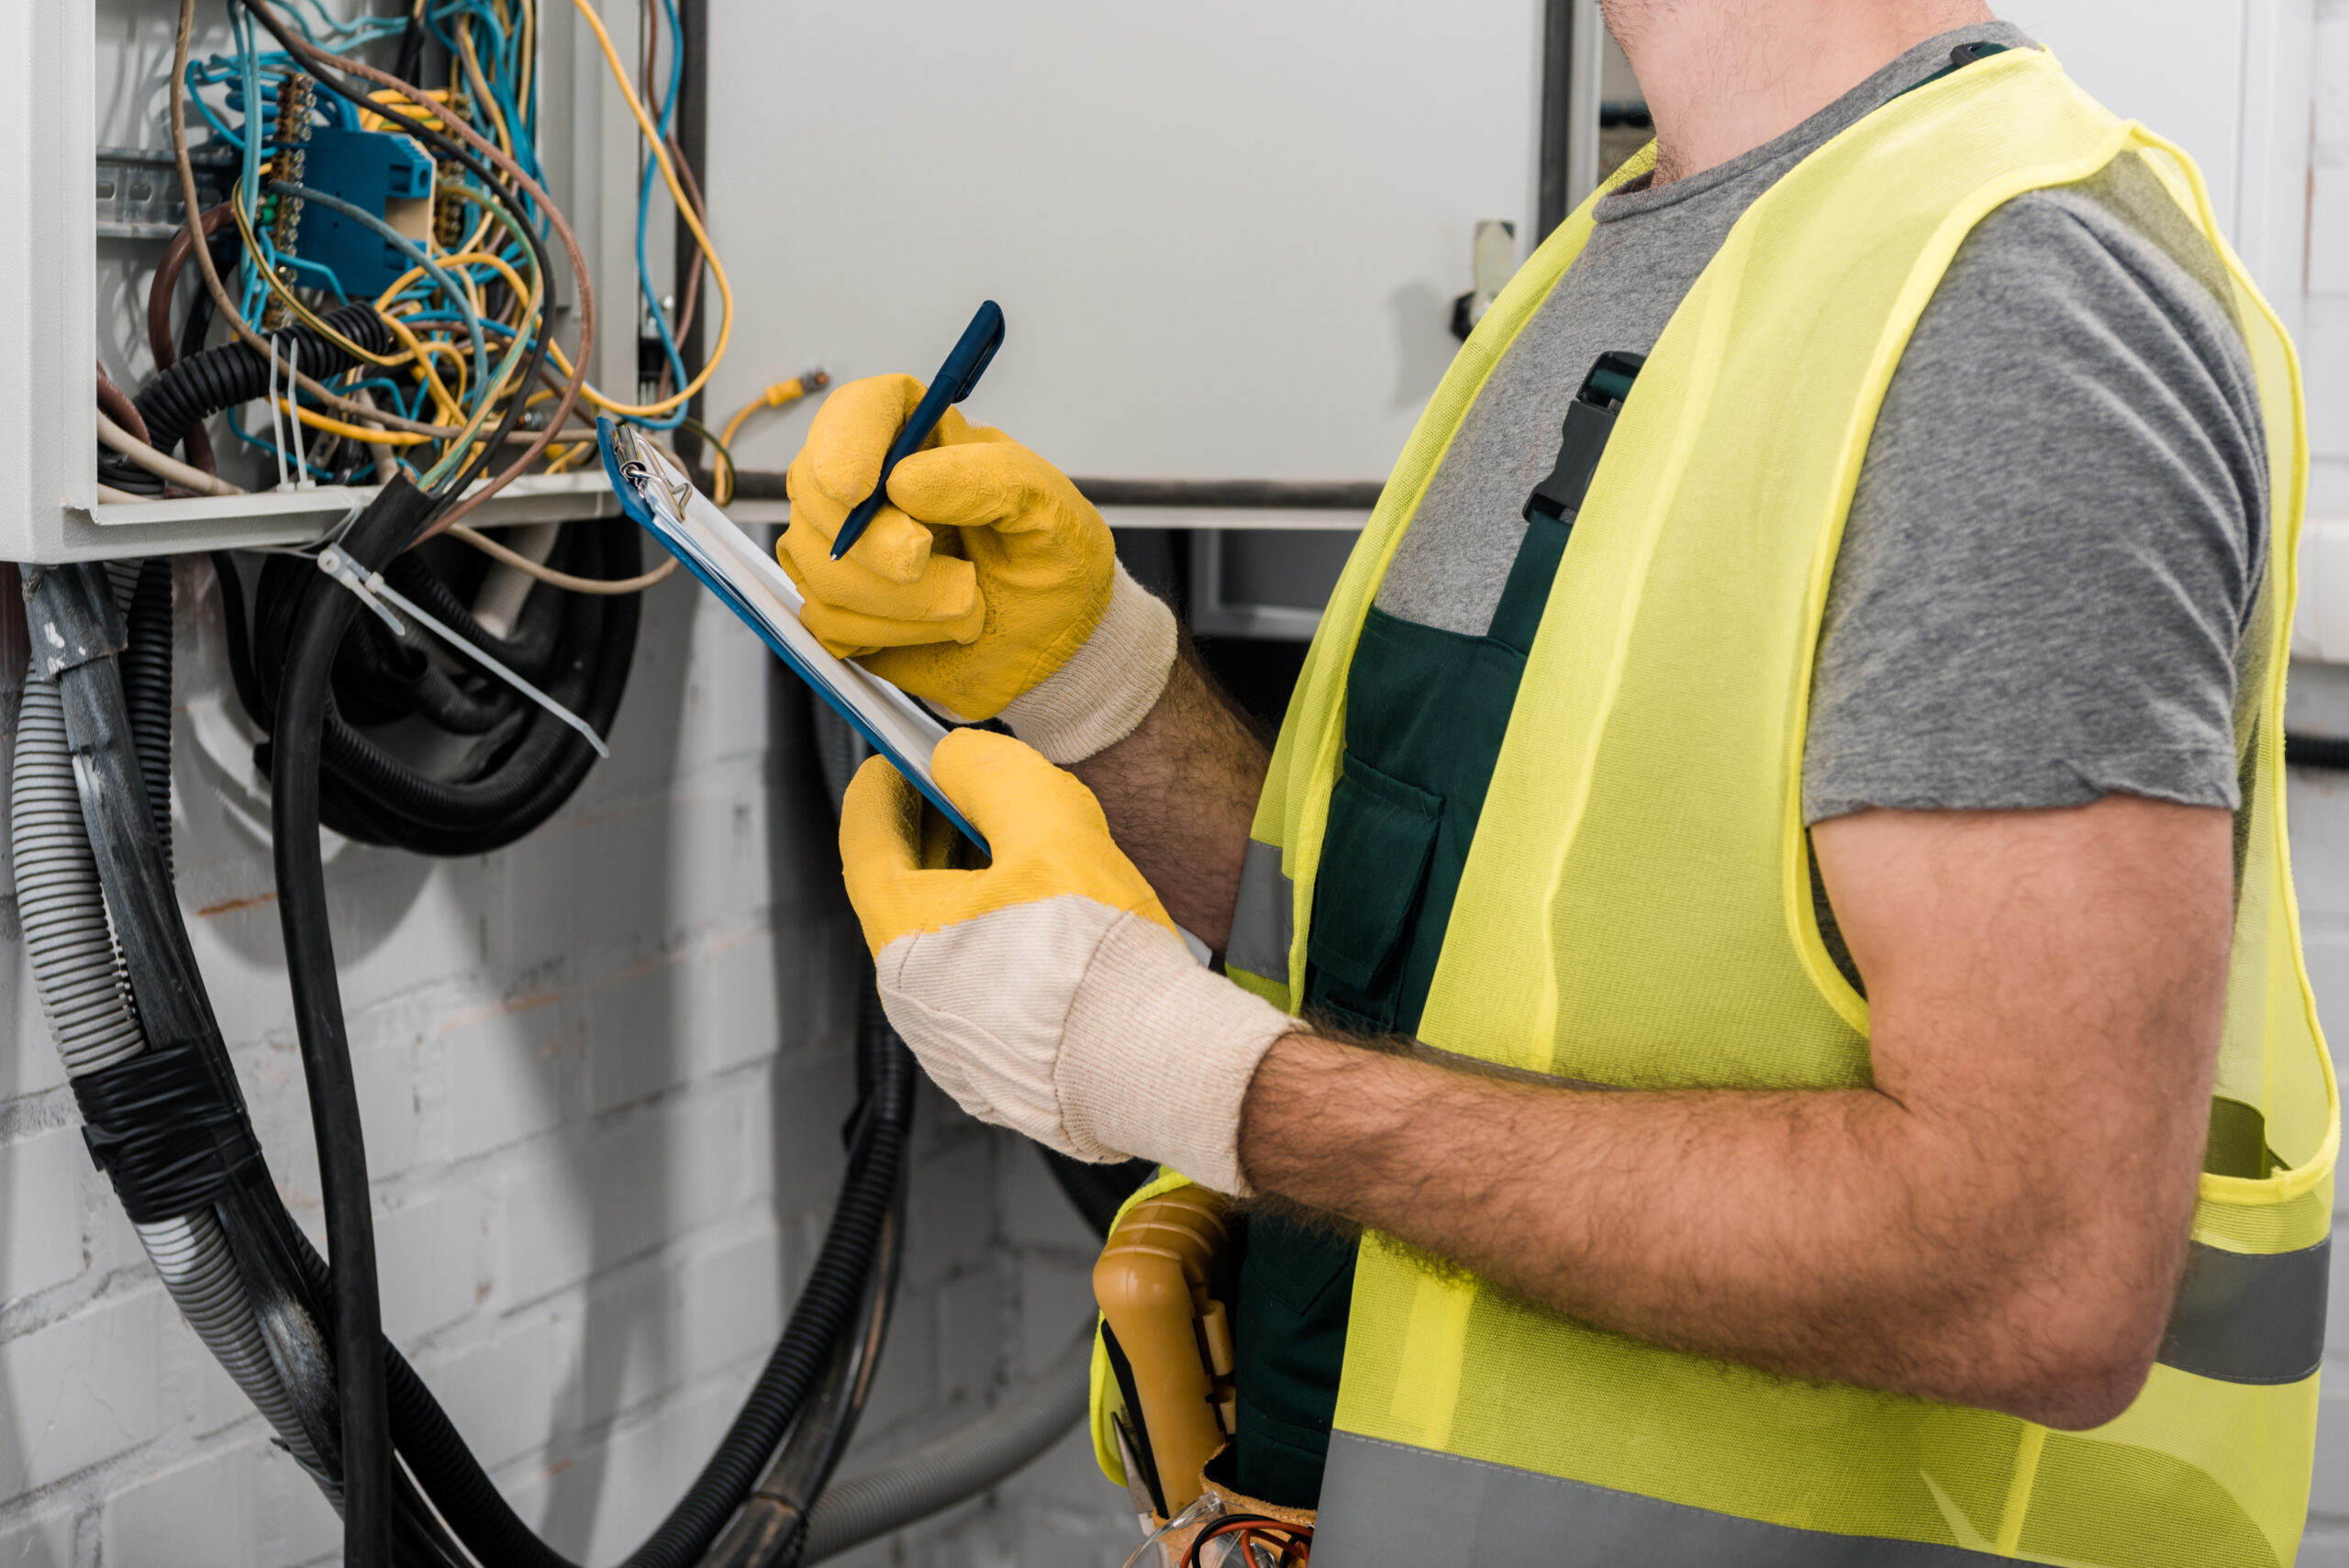 Avoiding Electrical Code Violations